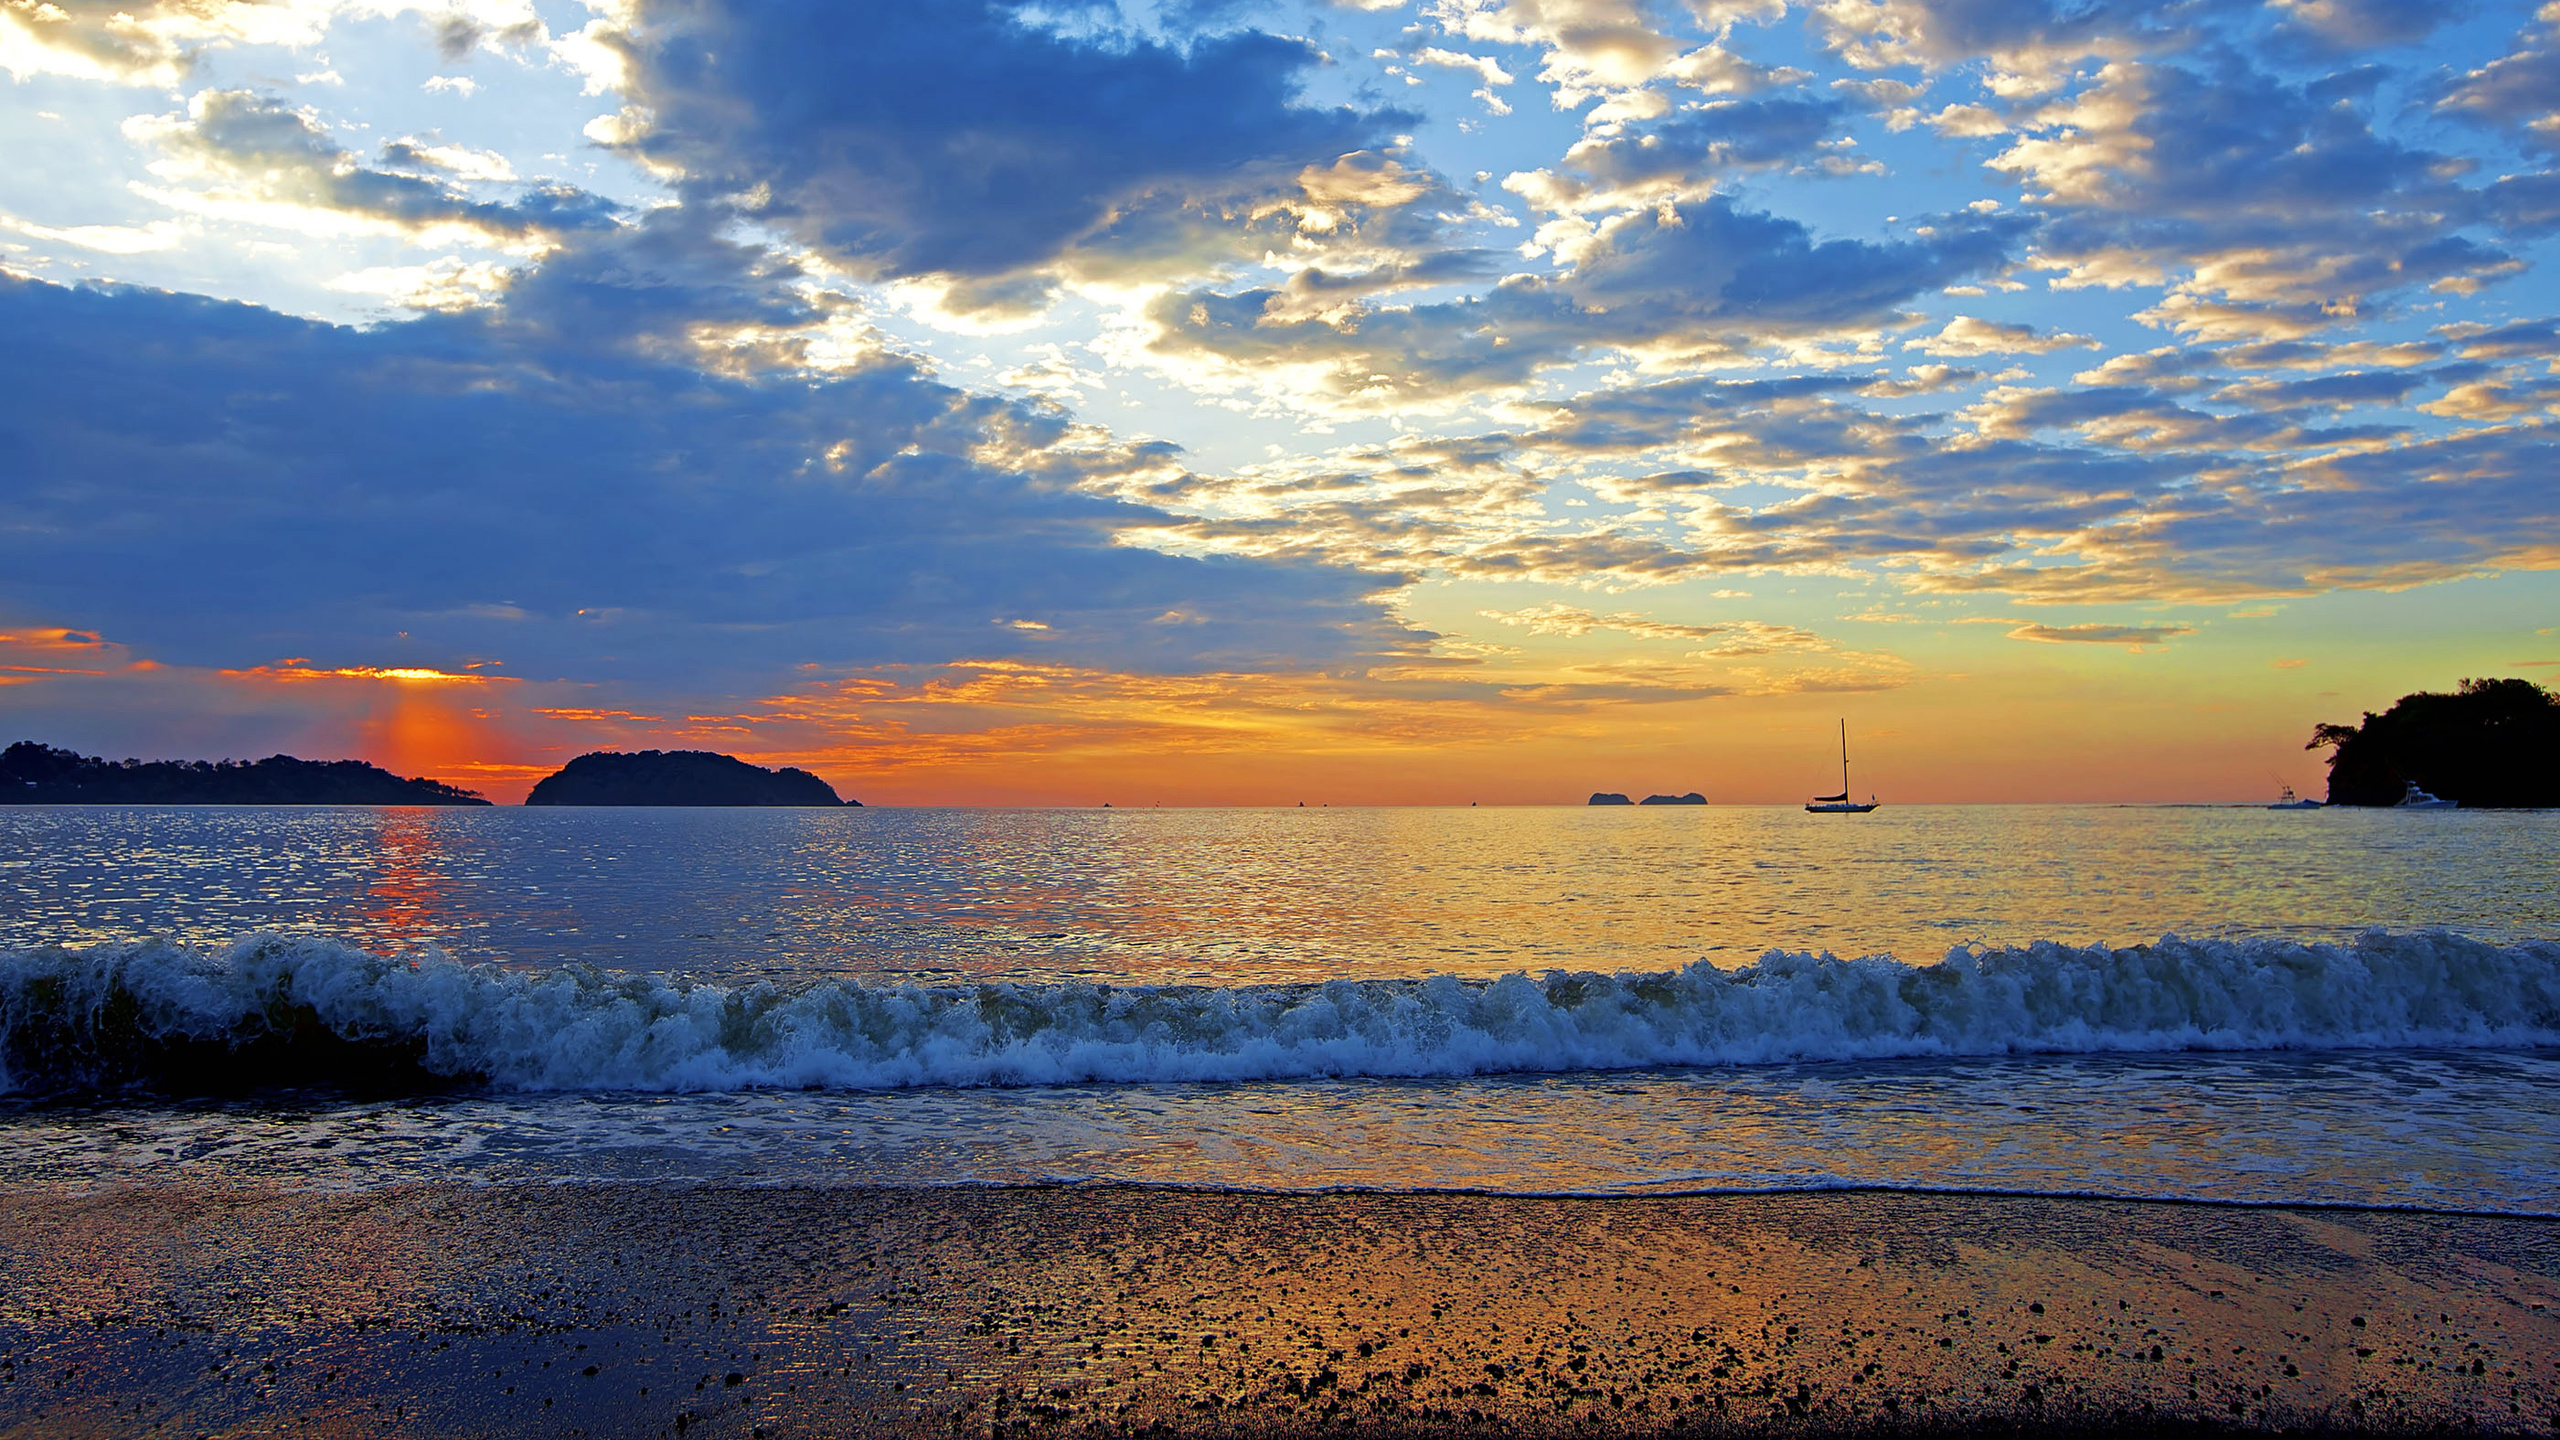 wallpaper of colorful sunset in the guancaste  costa rica